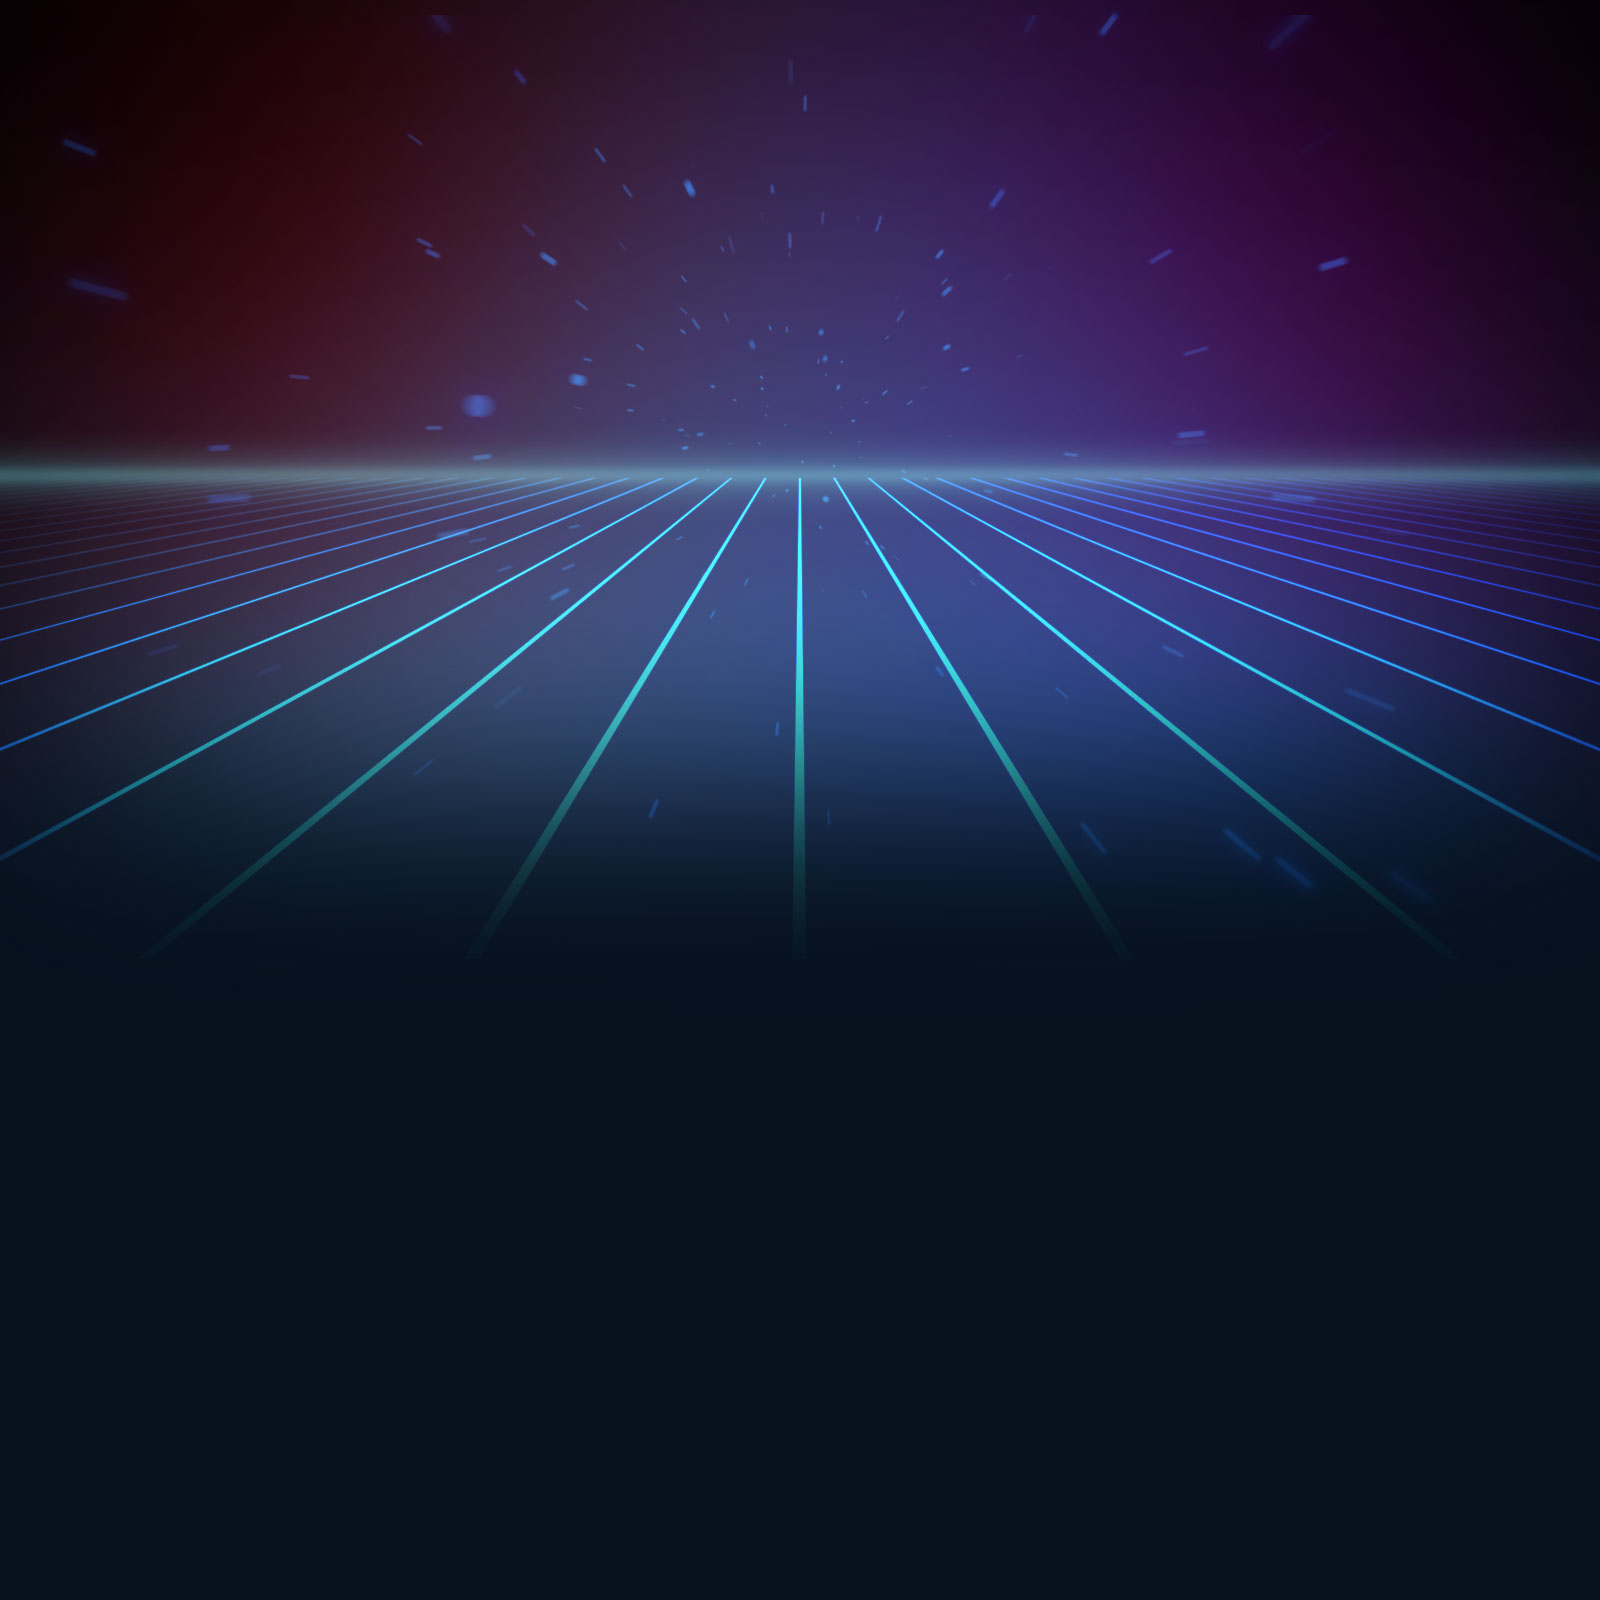 Neon Drive - 80s Arcade Game: a game by fraoula